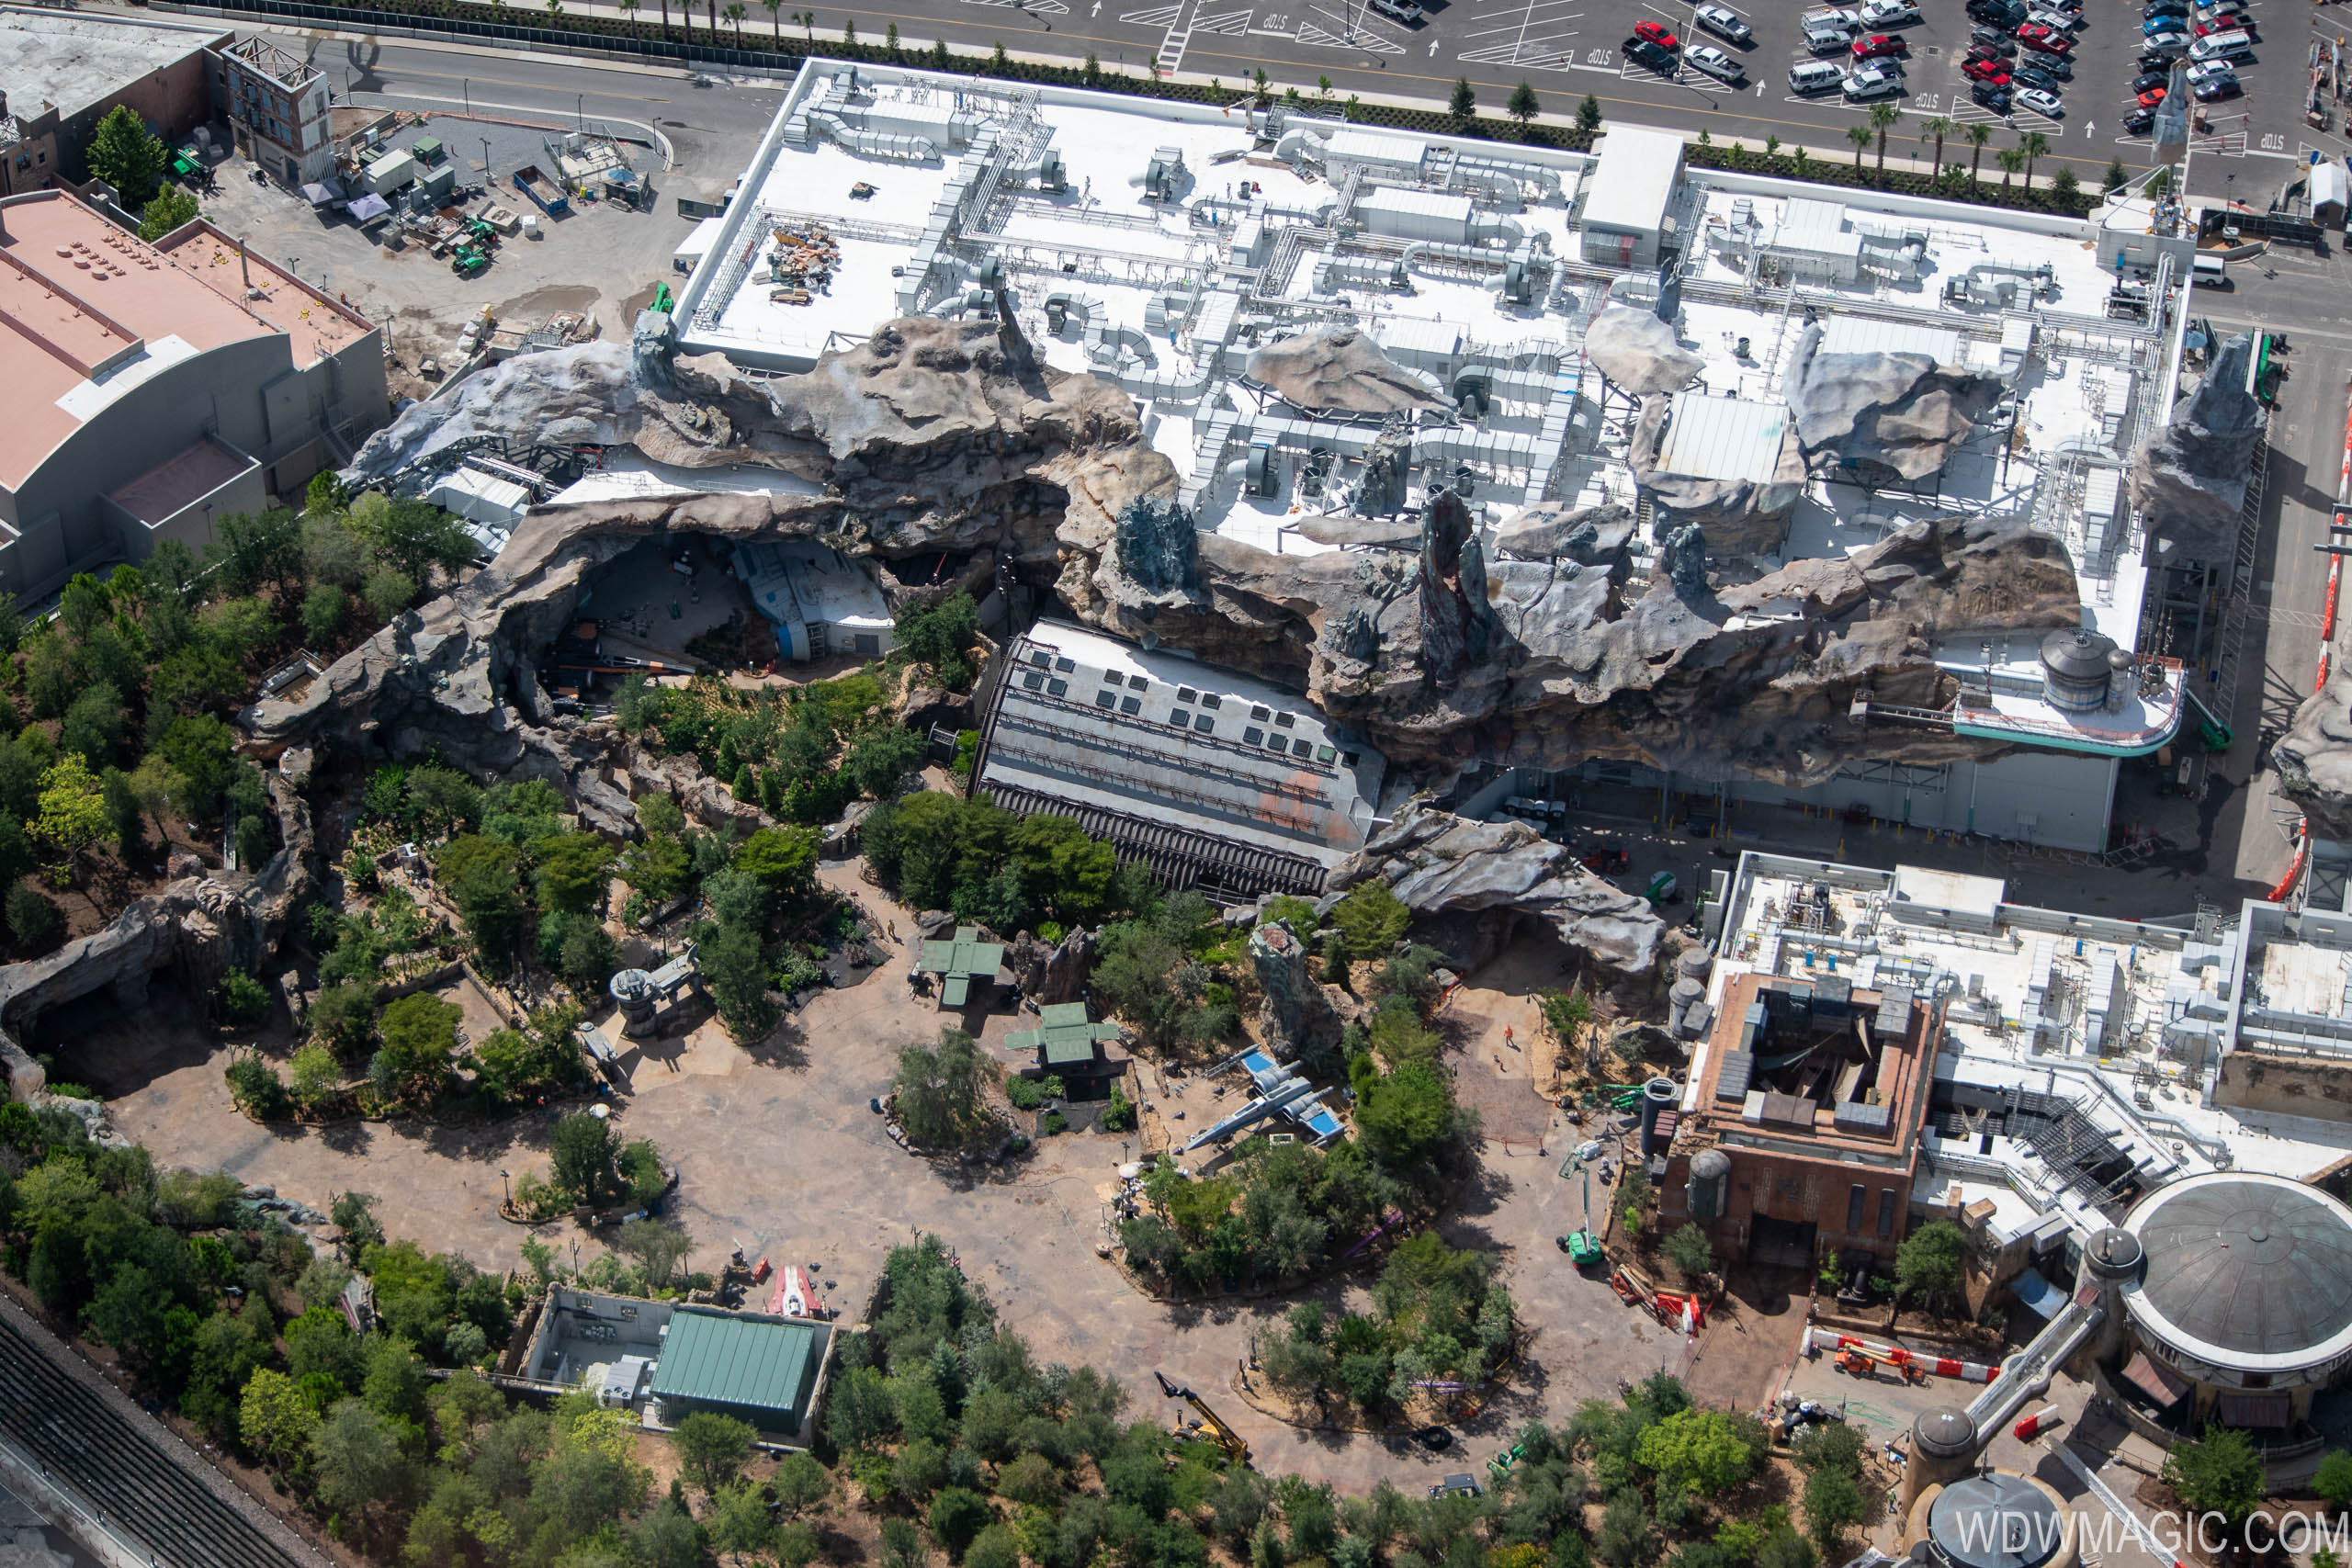 Star Wars Rise of the Resistance show building at Disney's Hollywood Studios